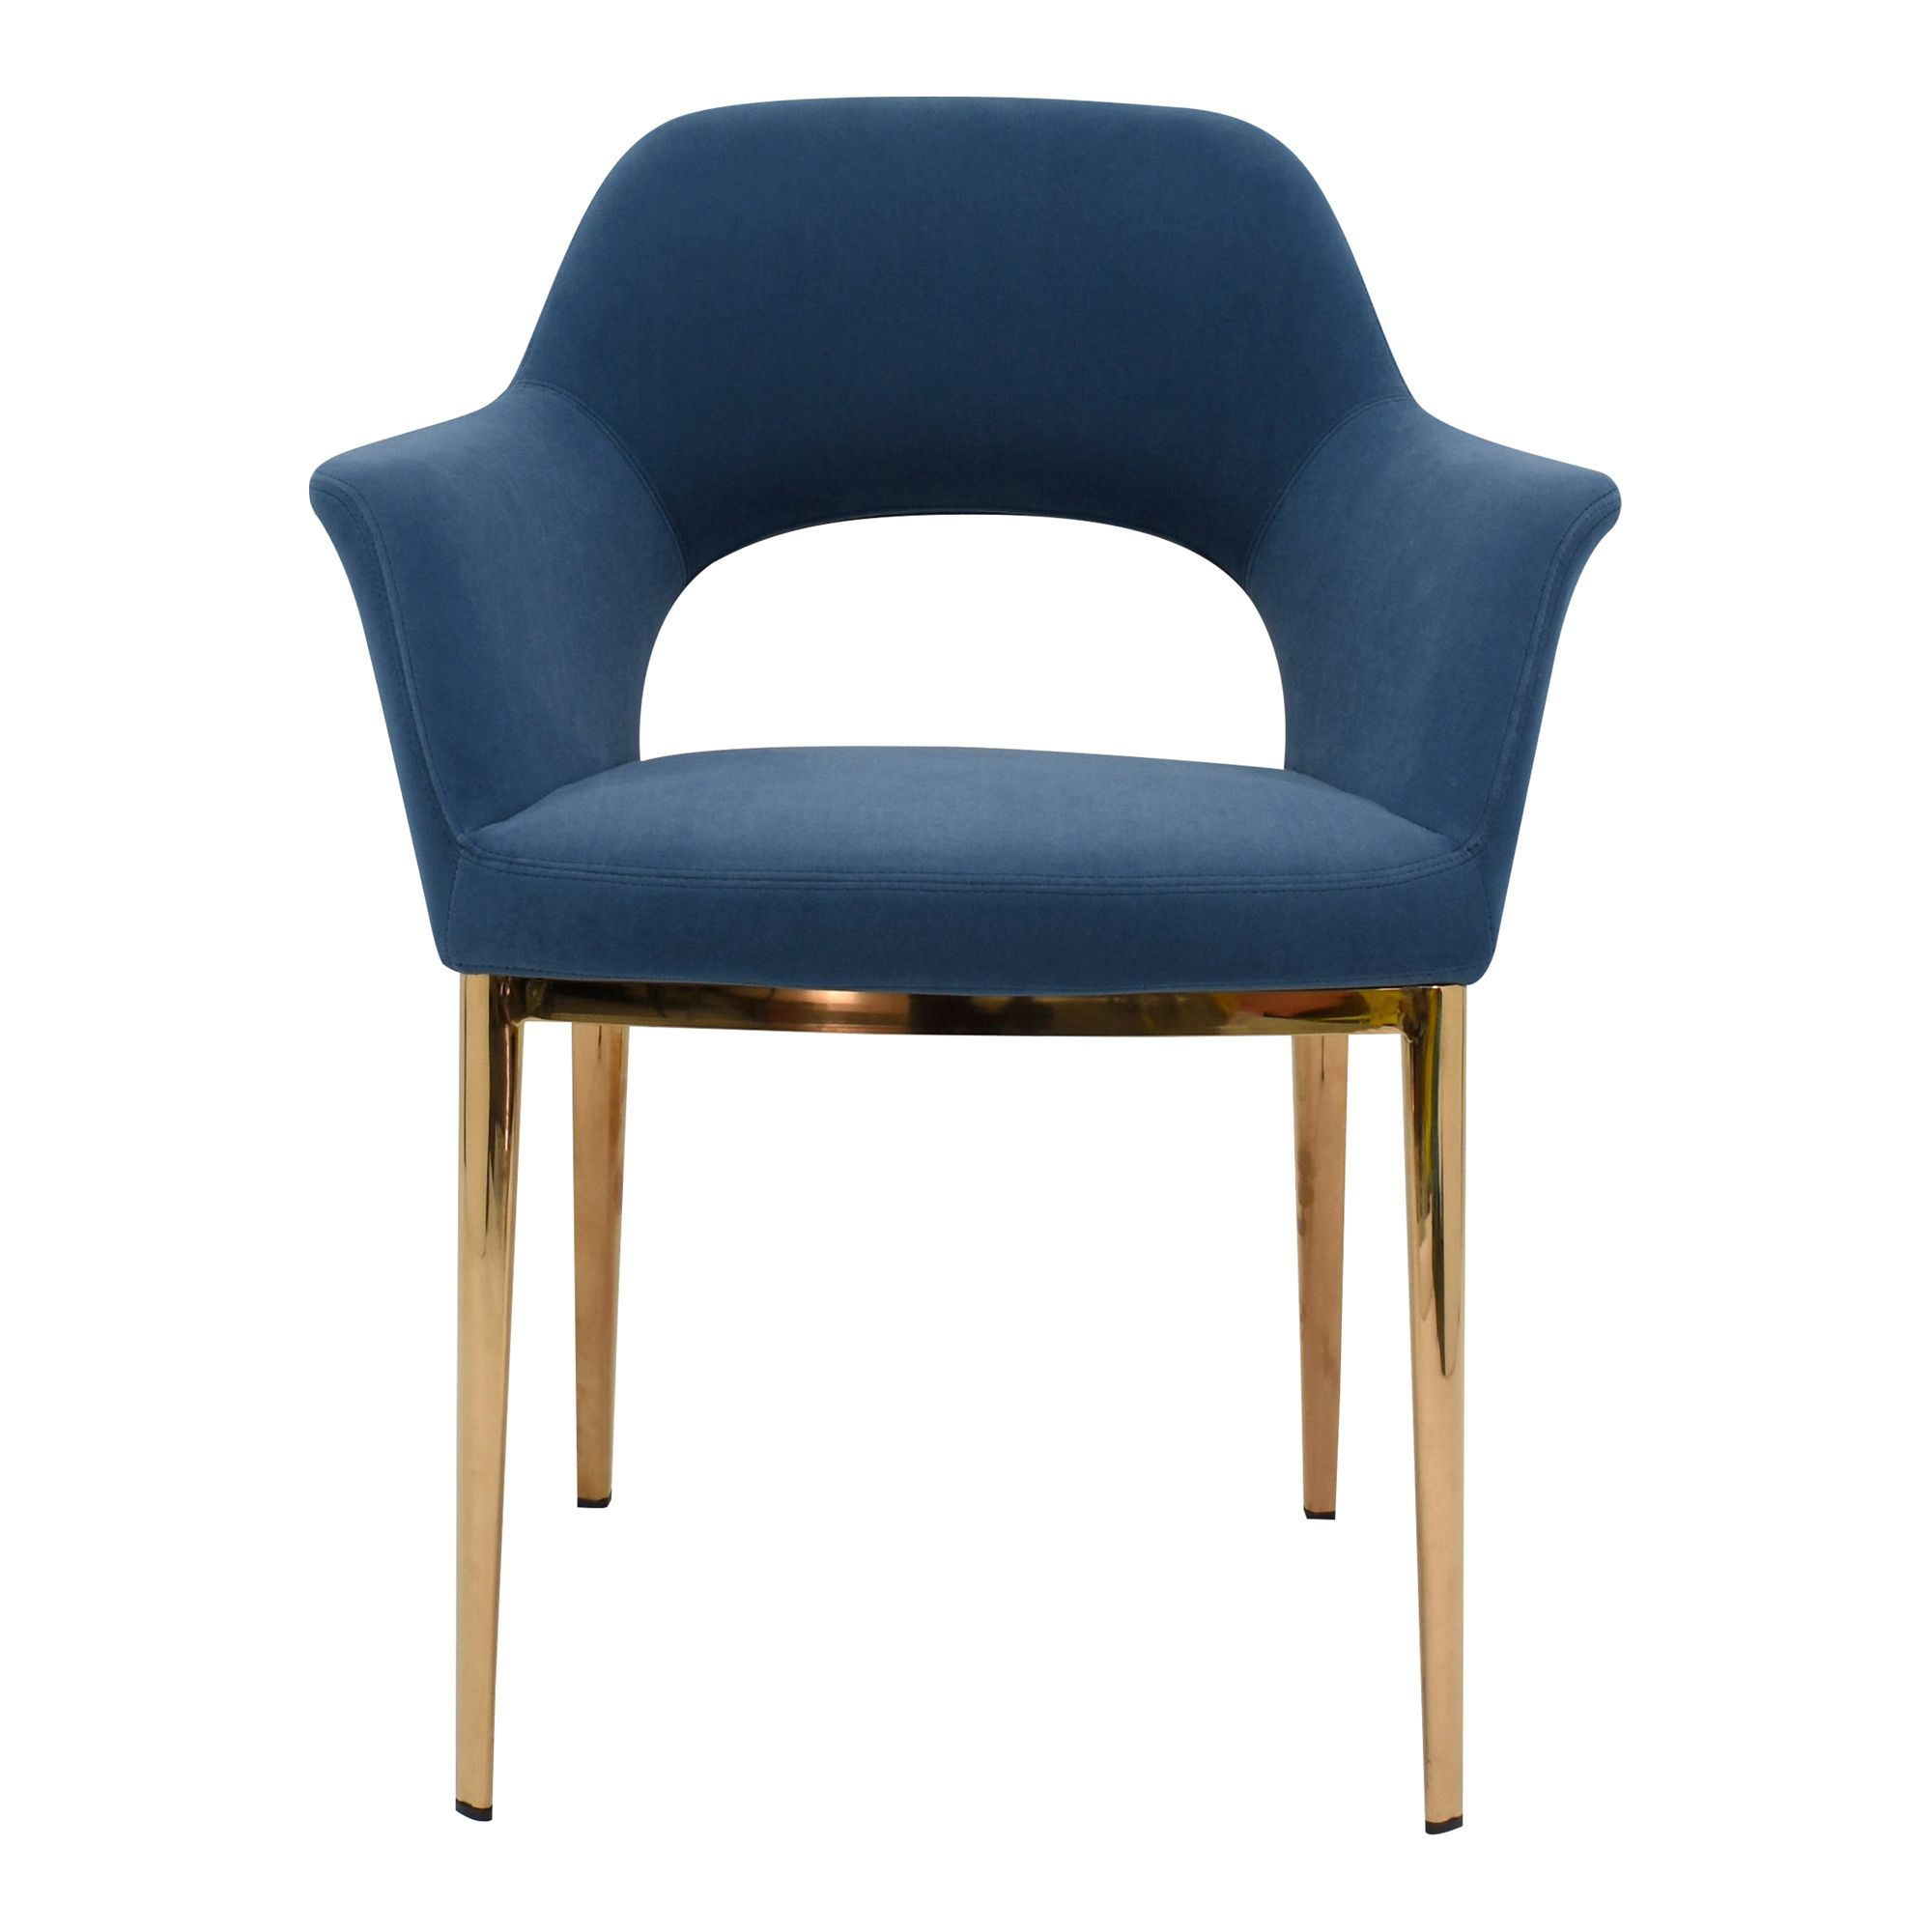 Carmel Dining Chair Blue Velvet Dining Room Chairs Upholstered Velvet Dining Chairs Upholstered Dining Chairs